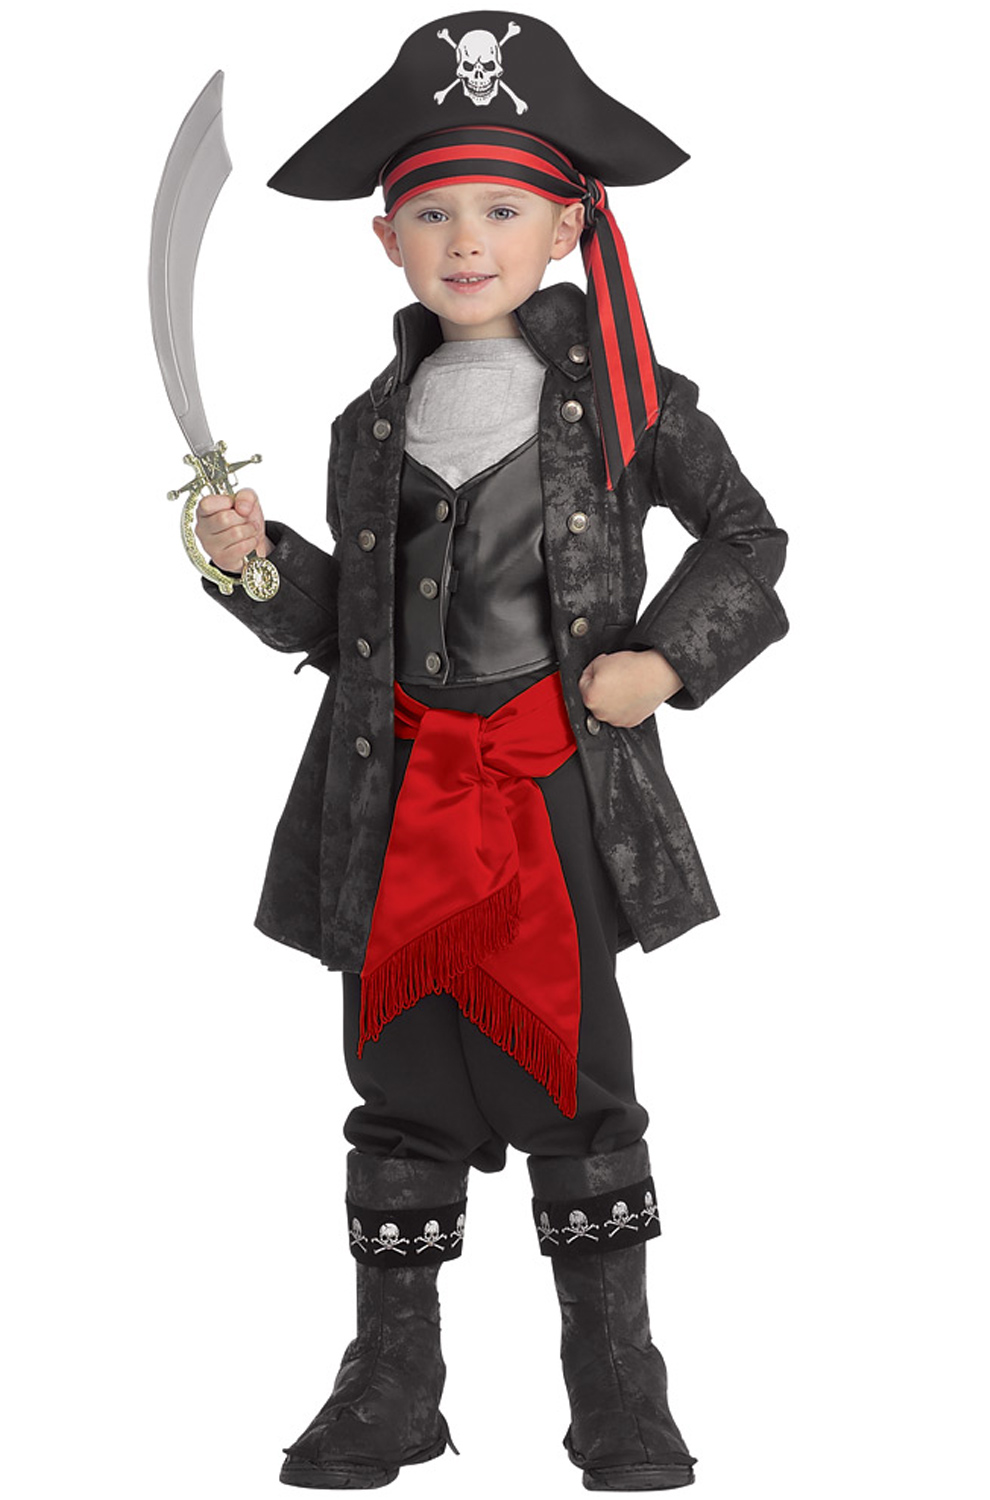 Captain Black Child Pirate Costume by Rubies